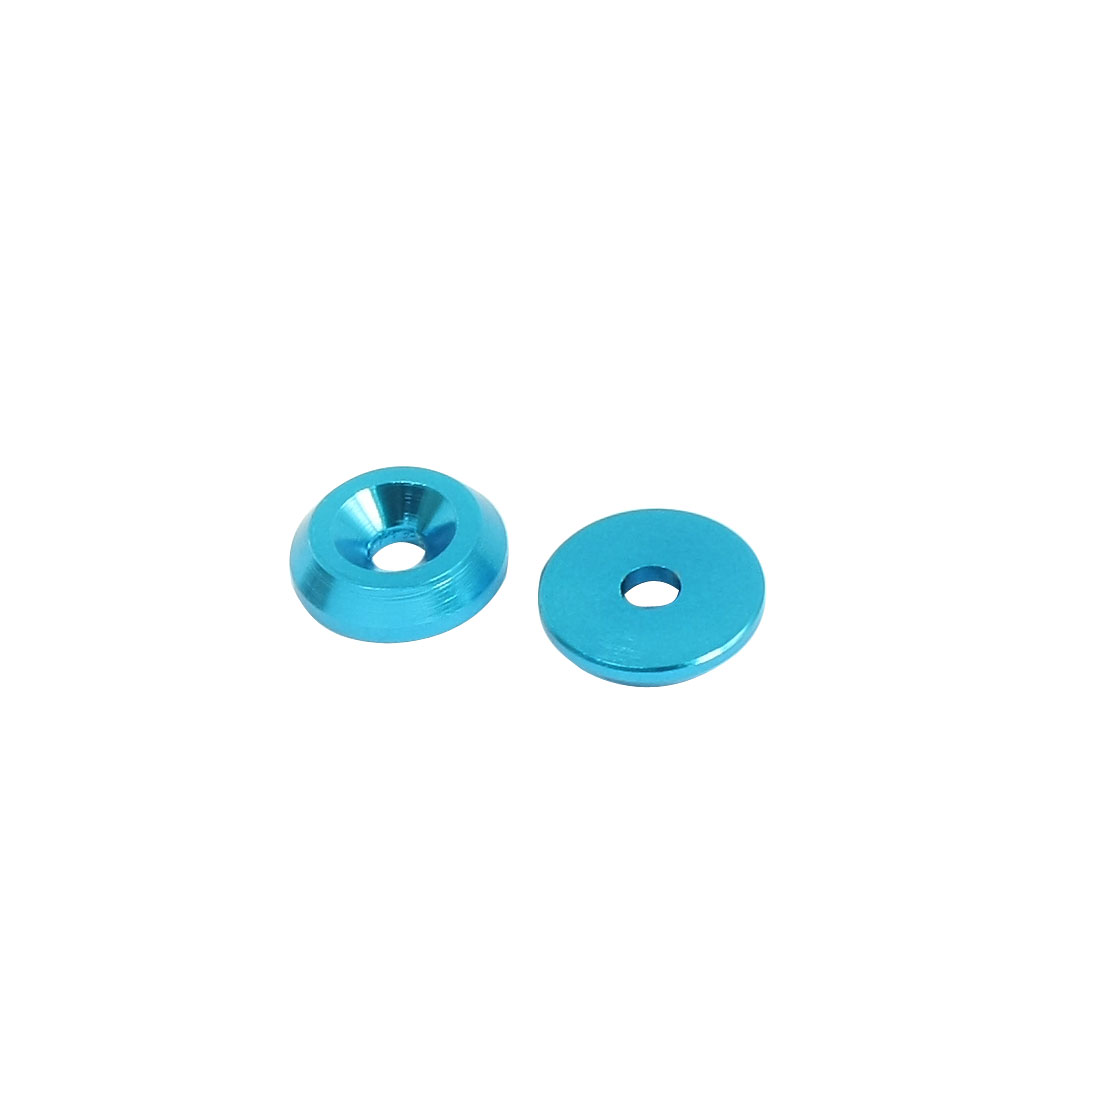 2 Pcs 3mm Outer Dia Blue Aluminium Alloy Spacer Washer Adaptor Replacement for 3mm Shaft RC Model